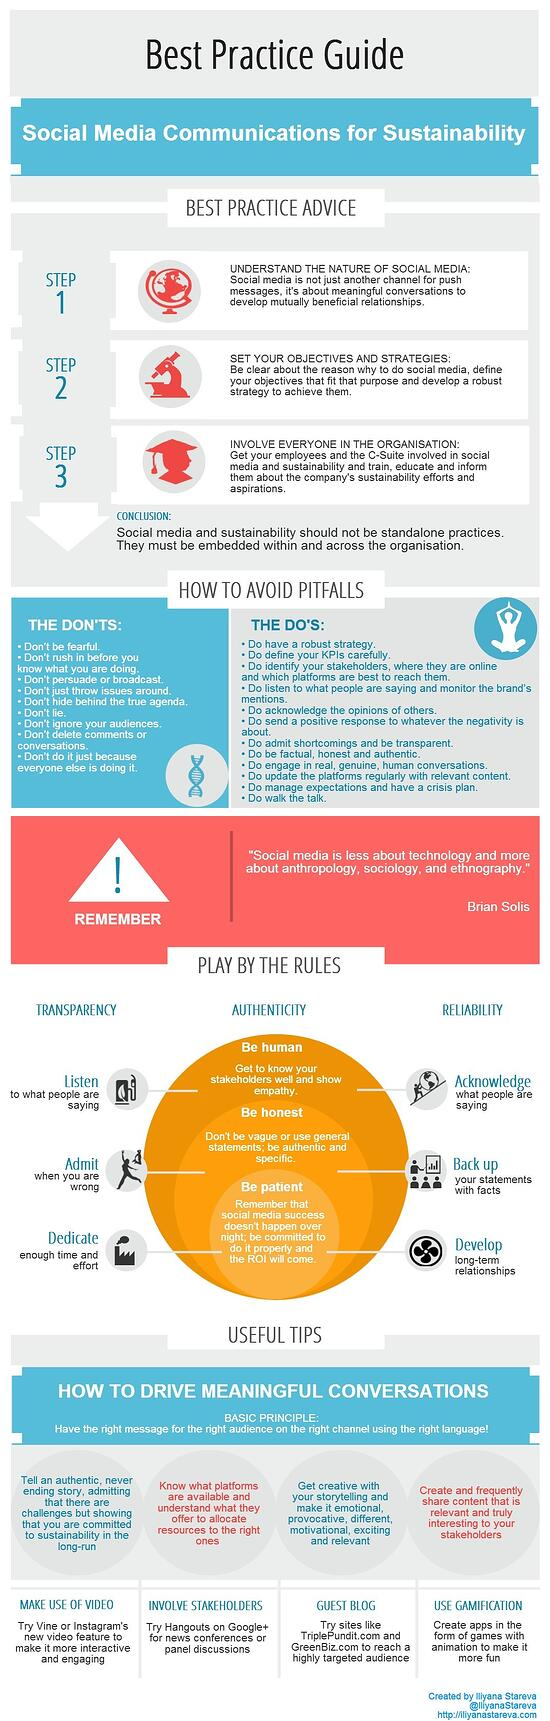 Best Practice Guide Social Media for Sustainability Communications Infographic